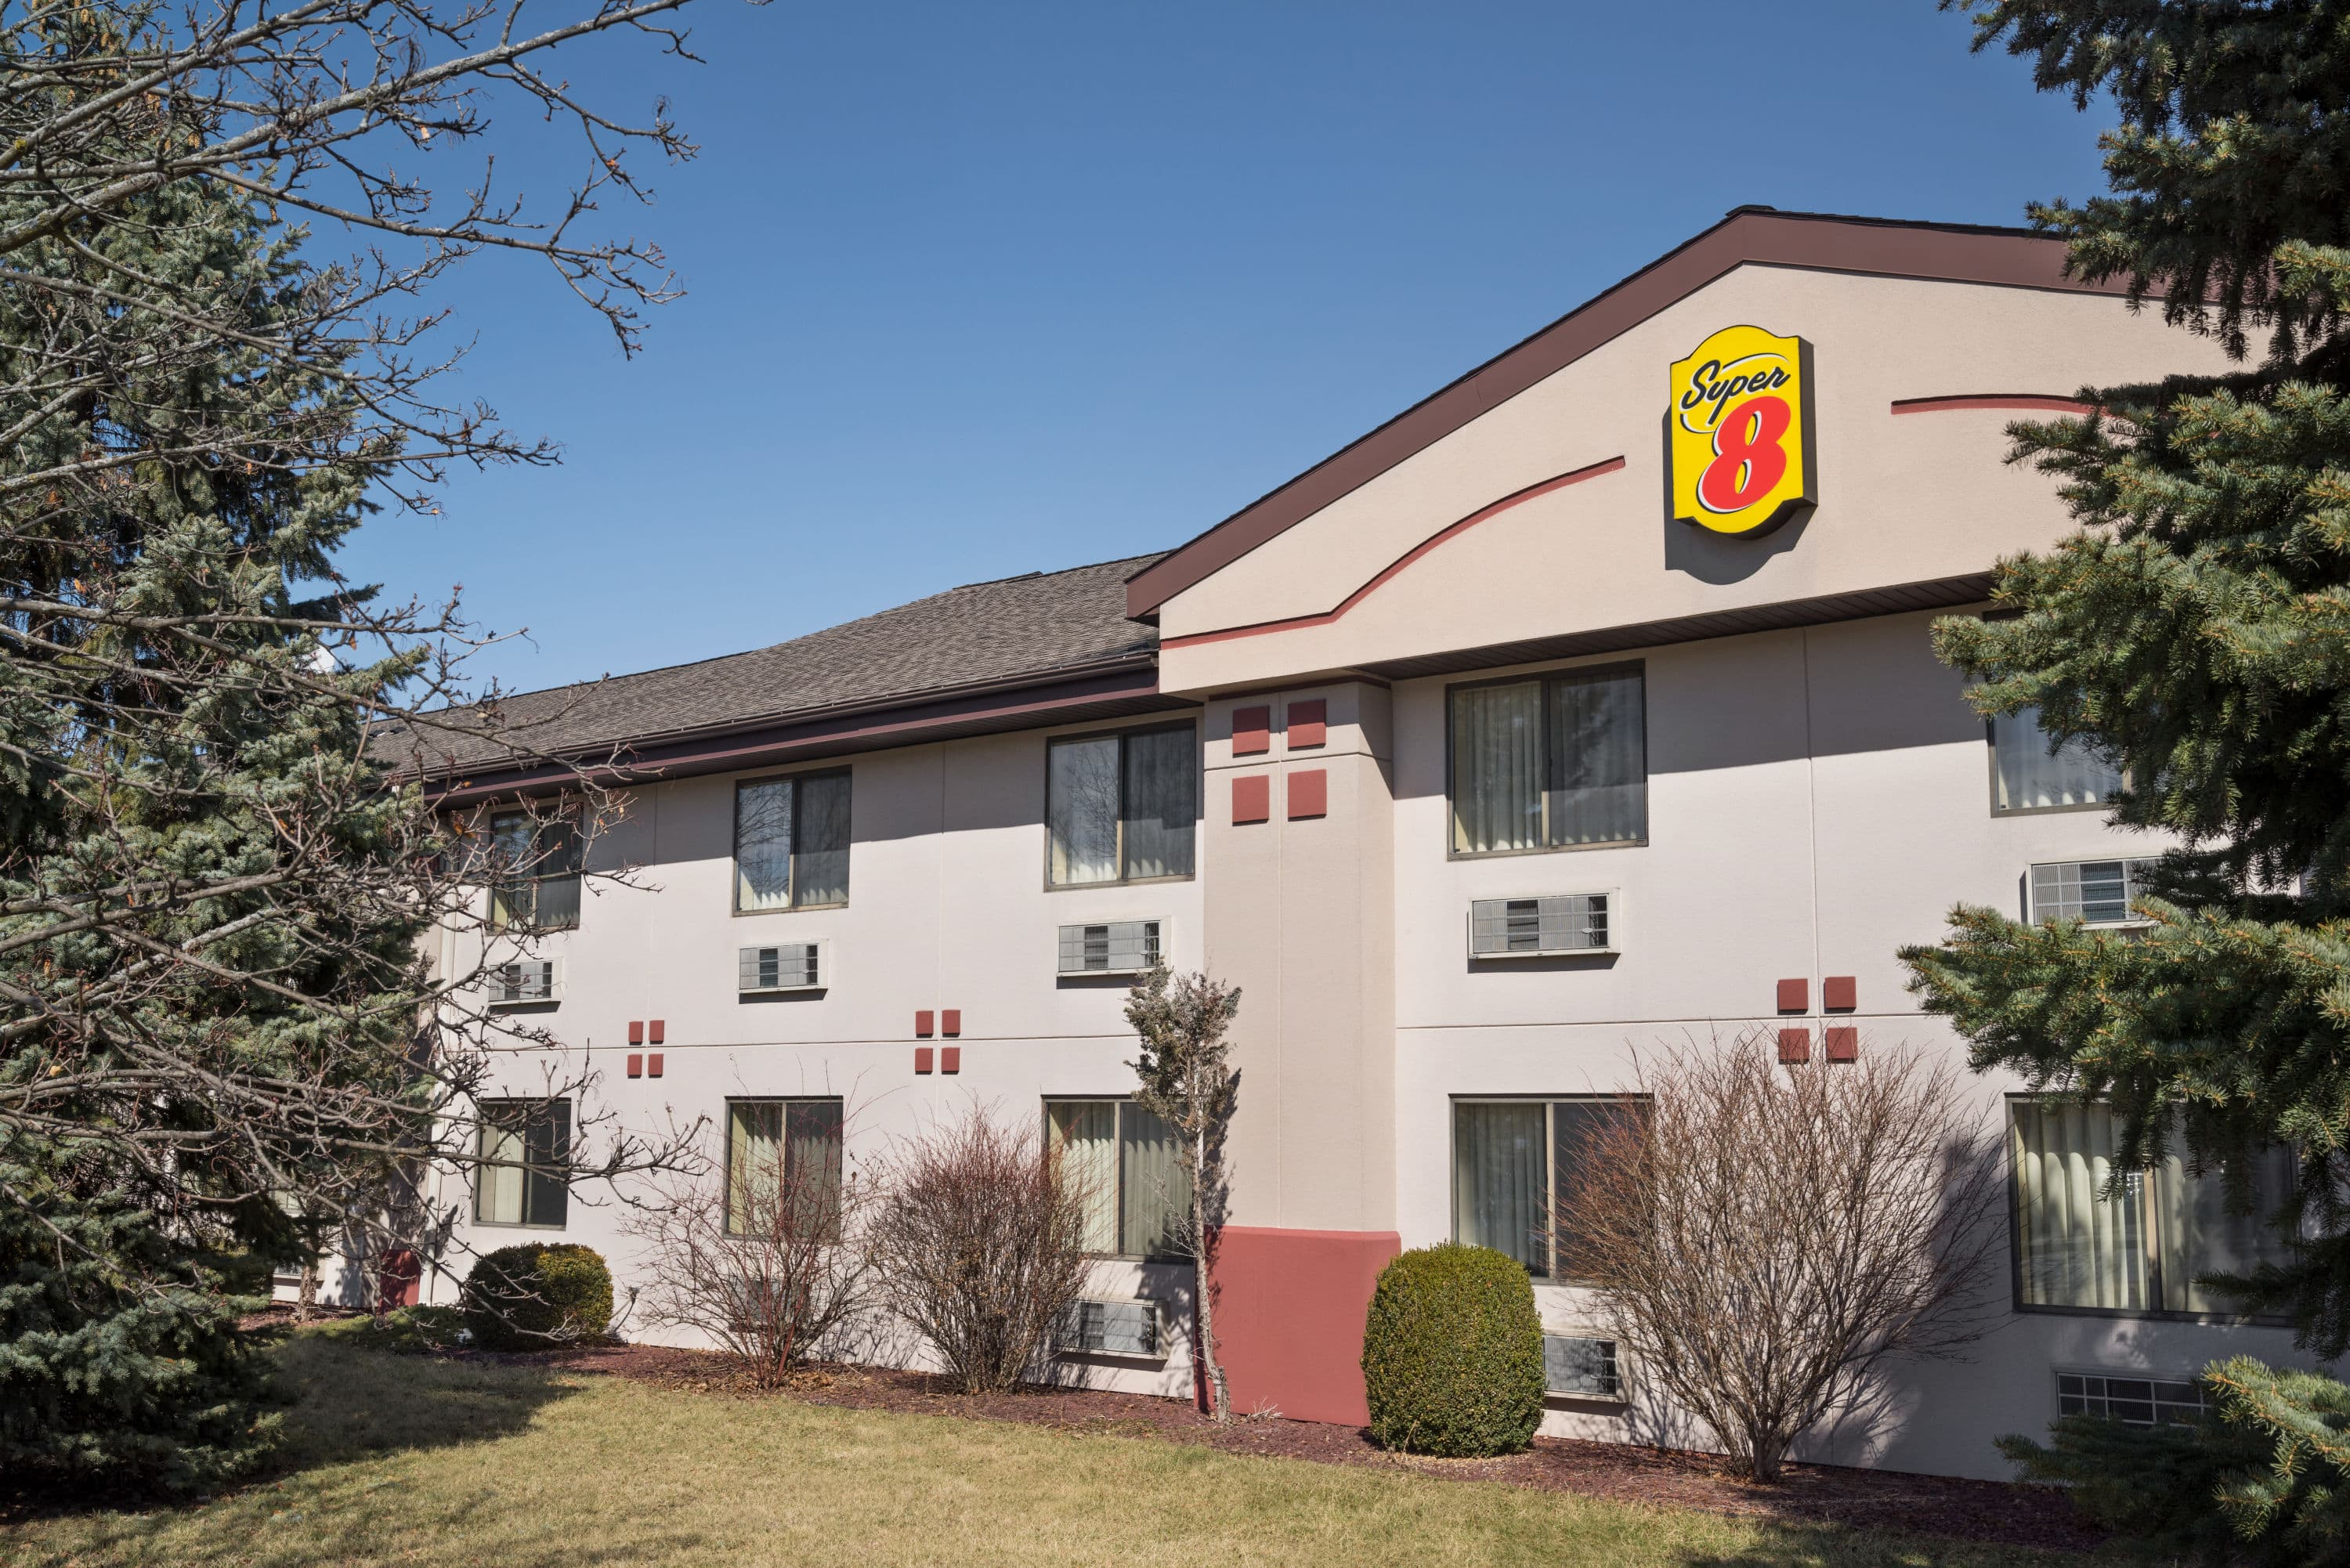 Super 8 by Wyndham Ithaca | Ithaca, NY Hotels